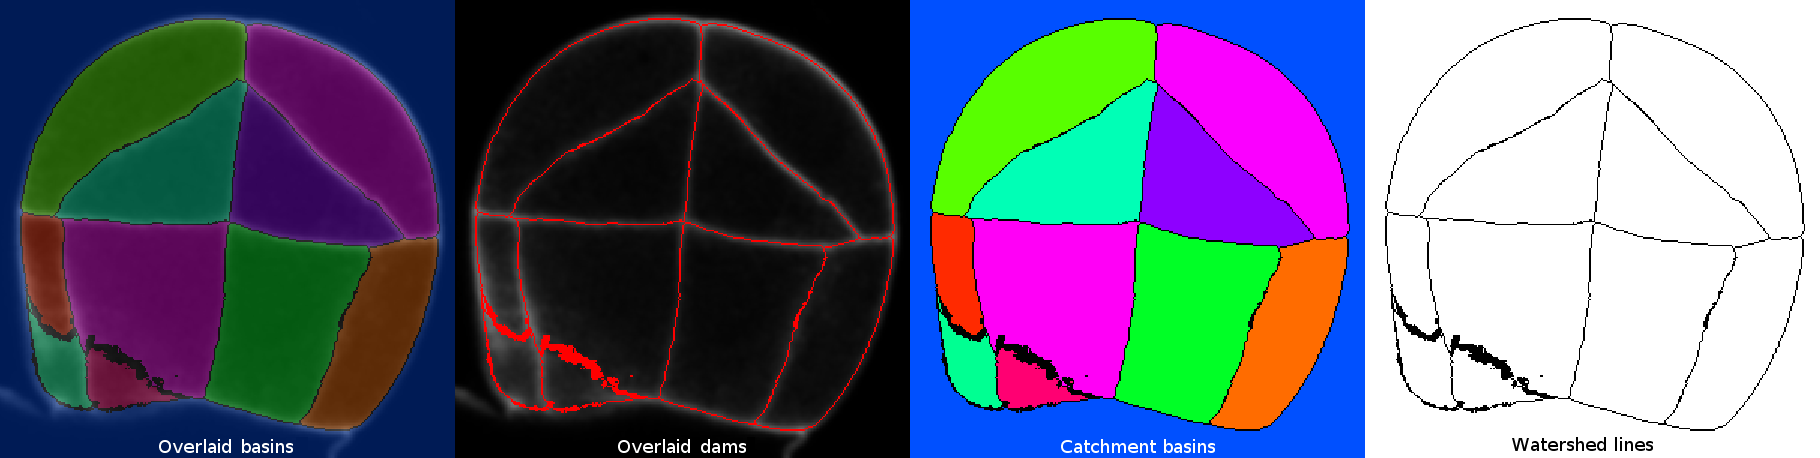 plugin:segmentation:morphological_segmentation:morphological-segmentation-result-examples-latest.png